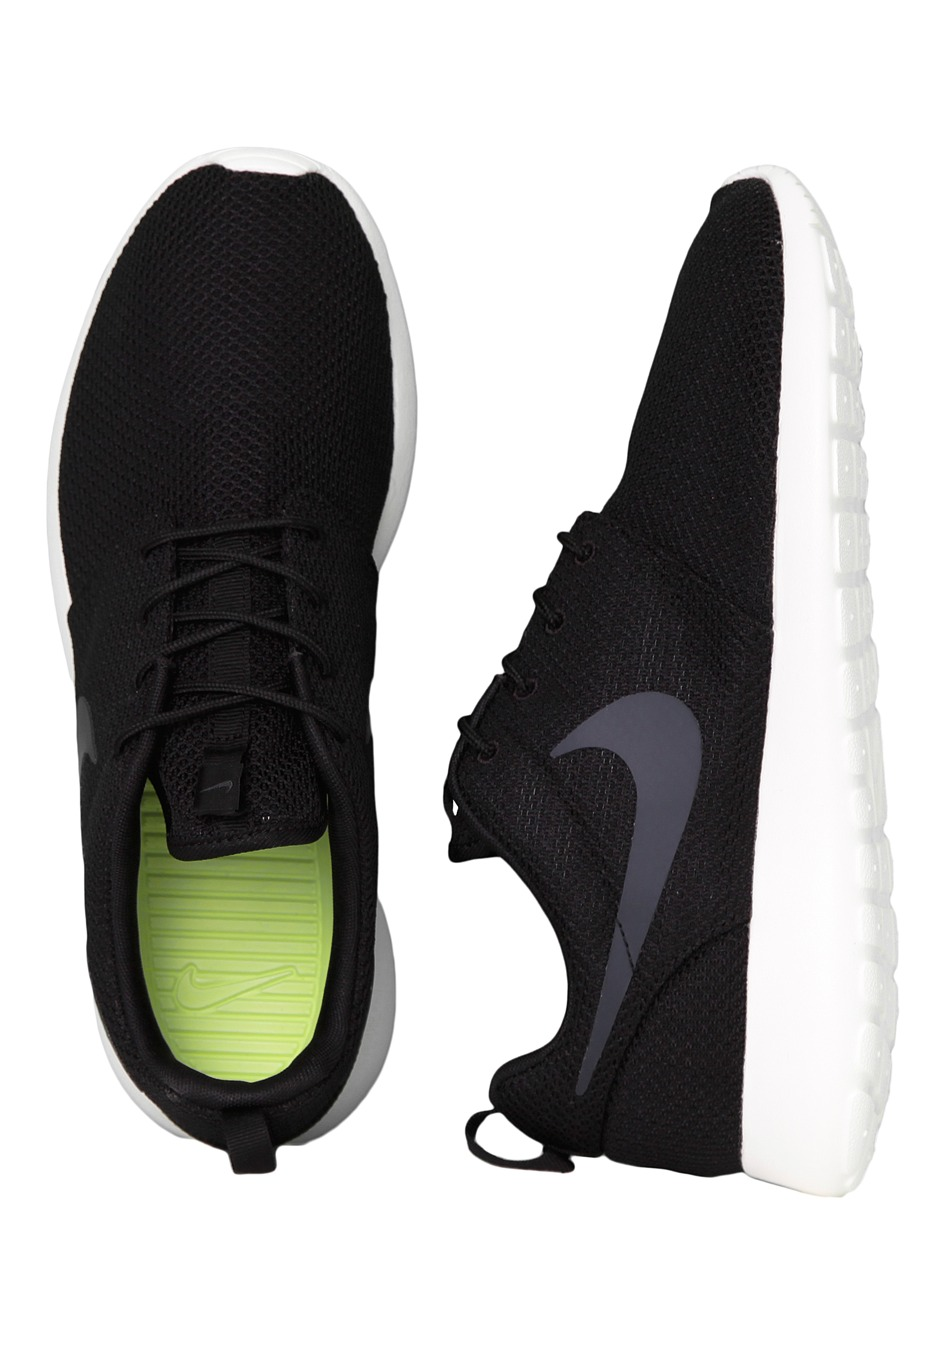 san francisco 535fe 601e4 Nike - Roshe One Black Anthracite Sail - Shoes - Impericon.com Worldwide